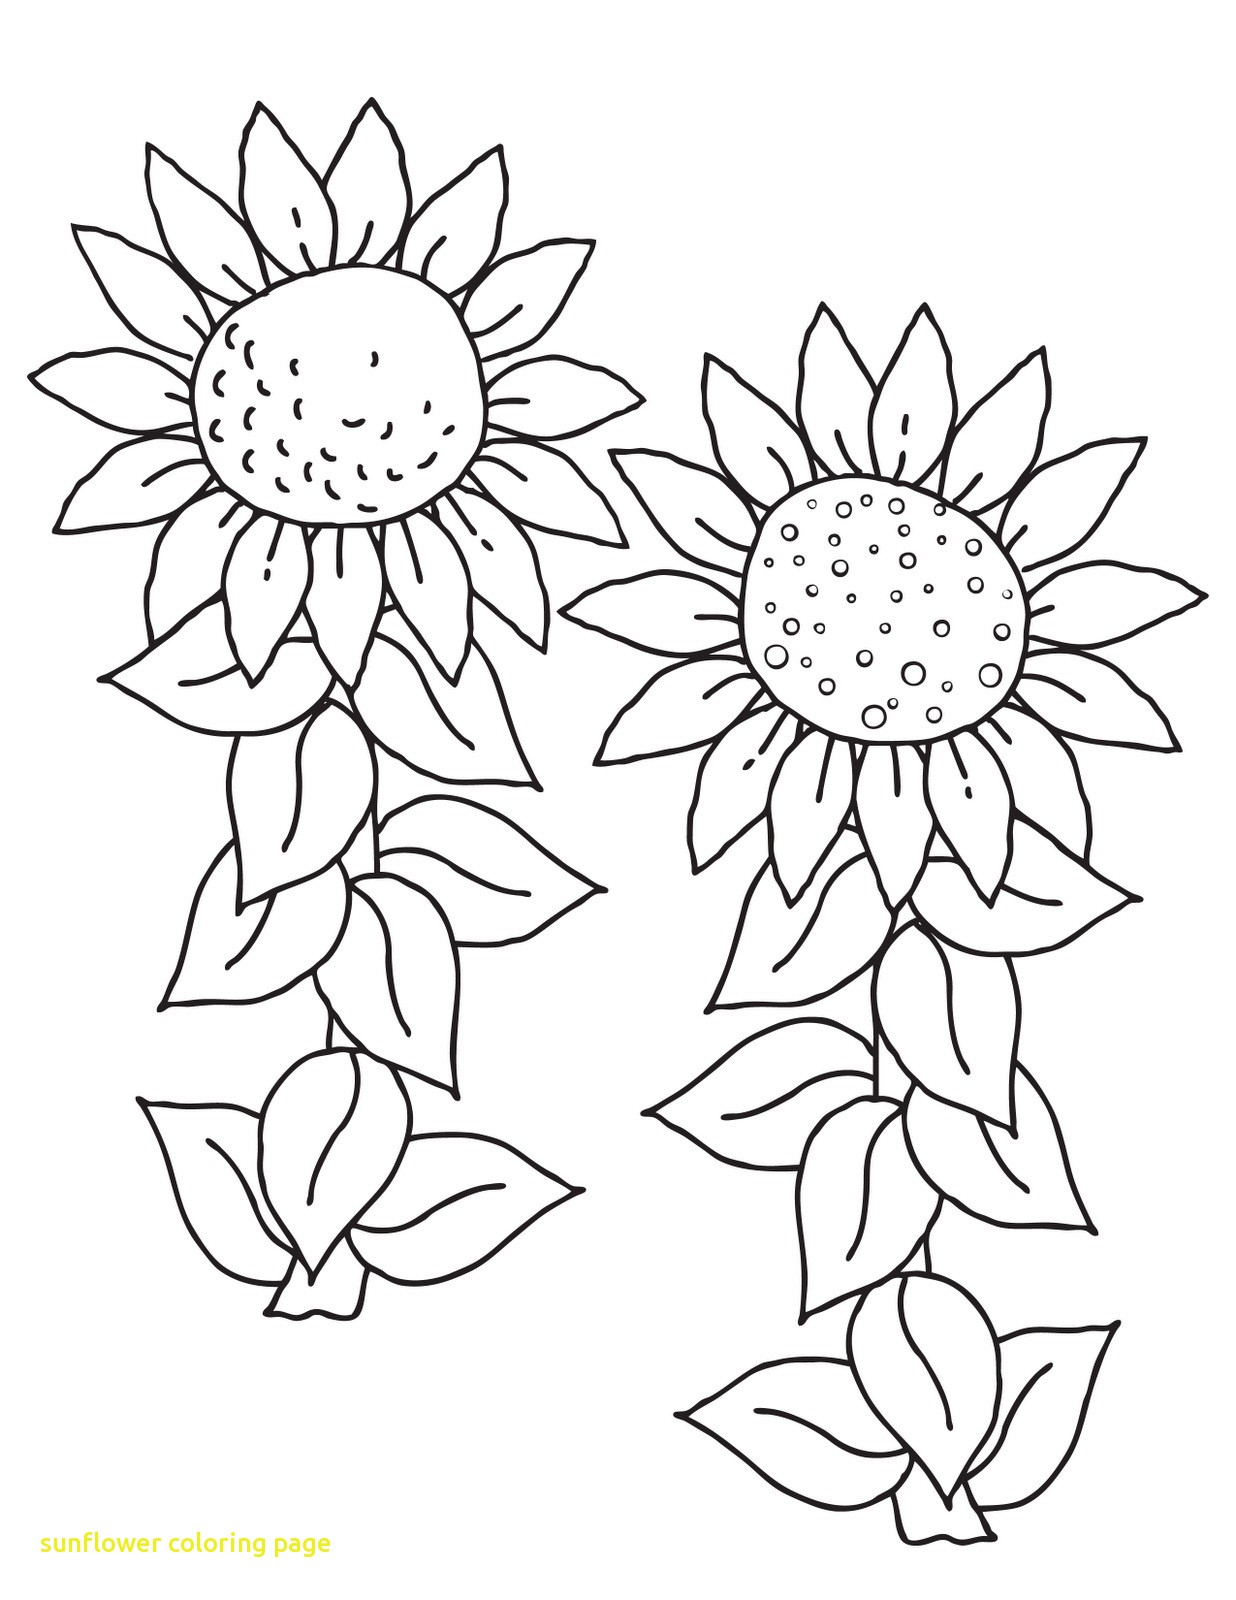 1236x1600 Sunflower Coloring Page With Free Printable Sunflower Coloring